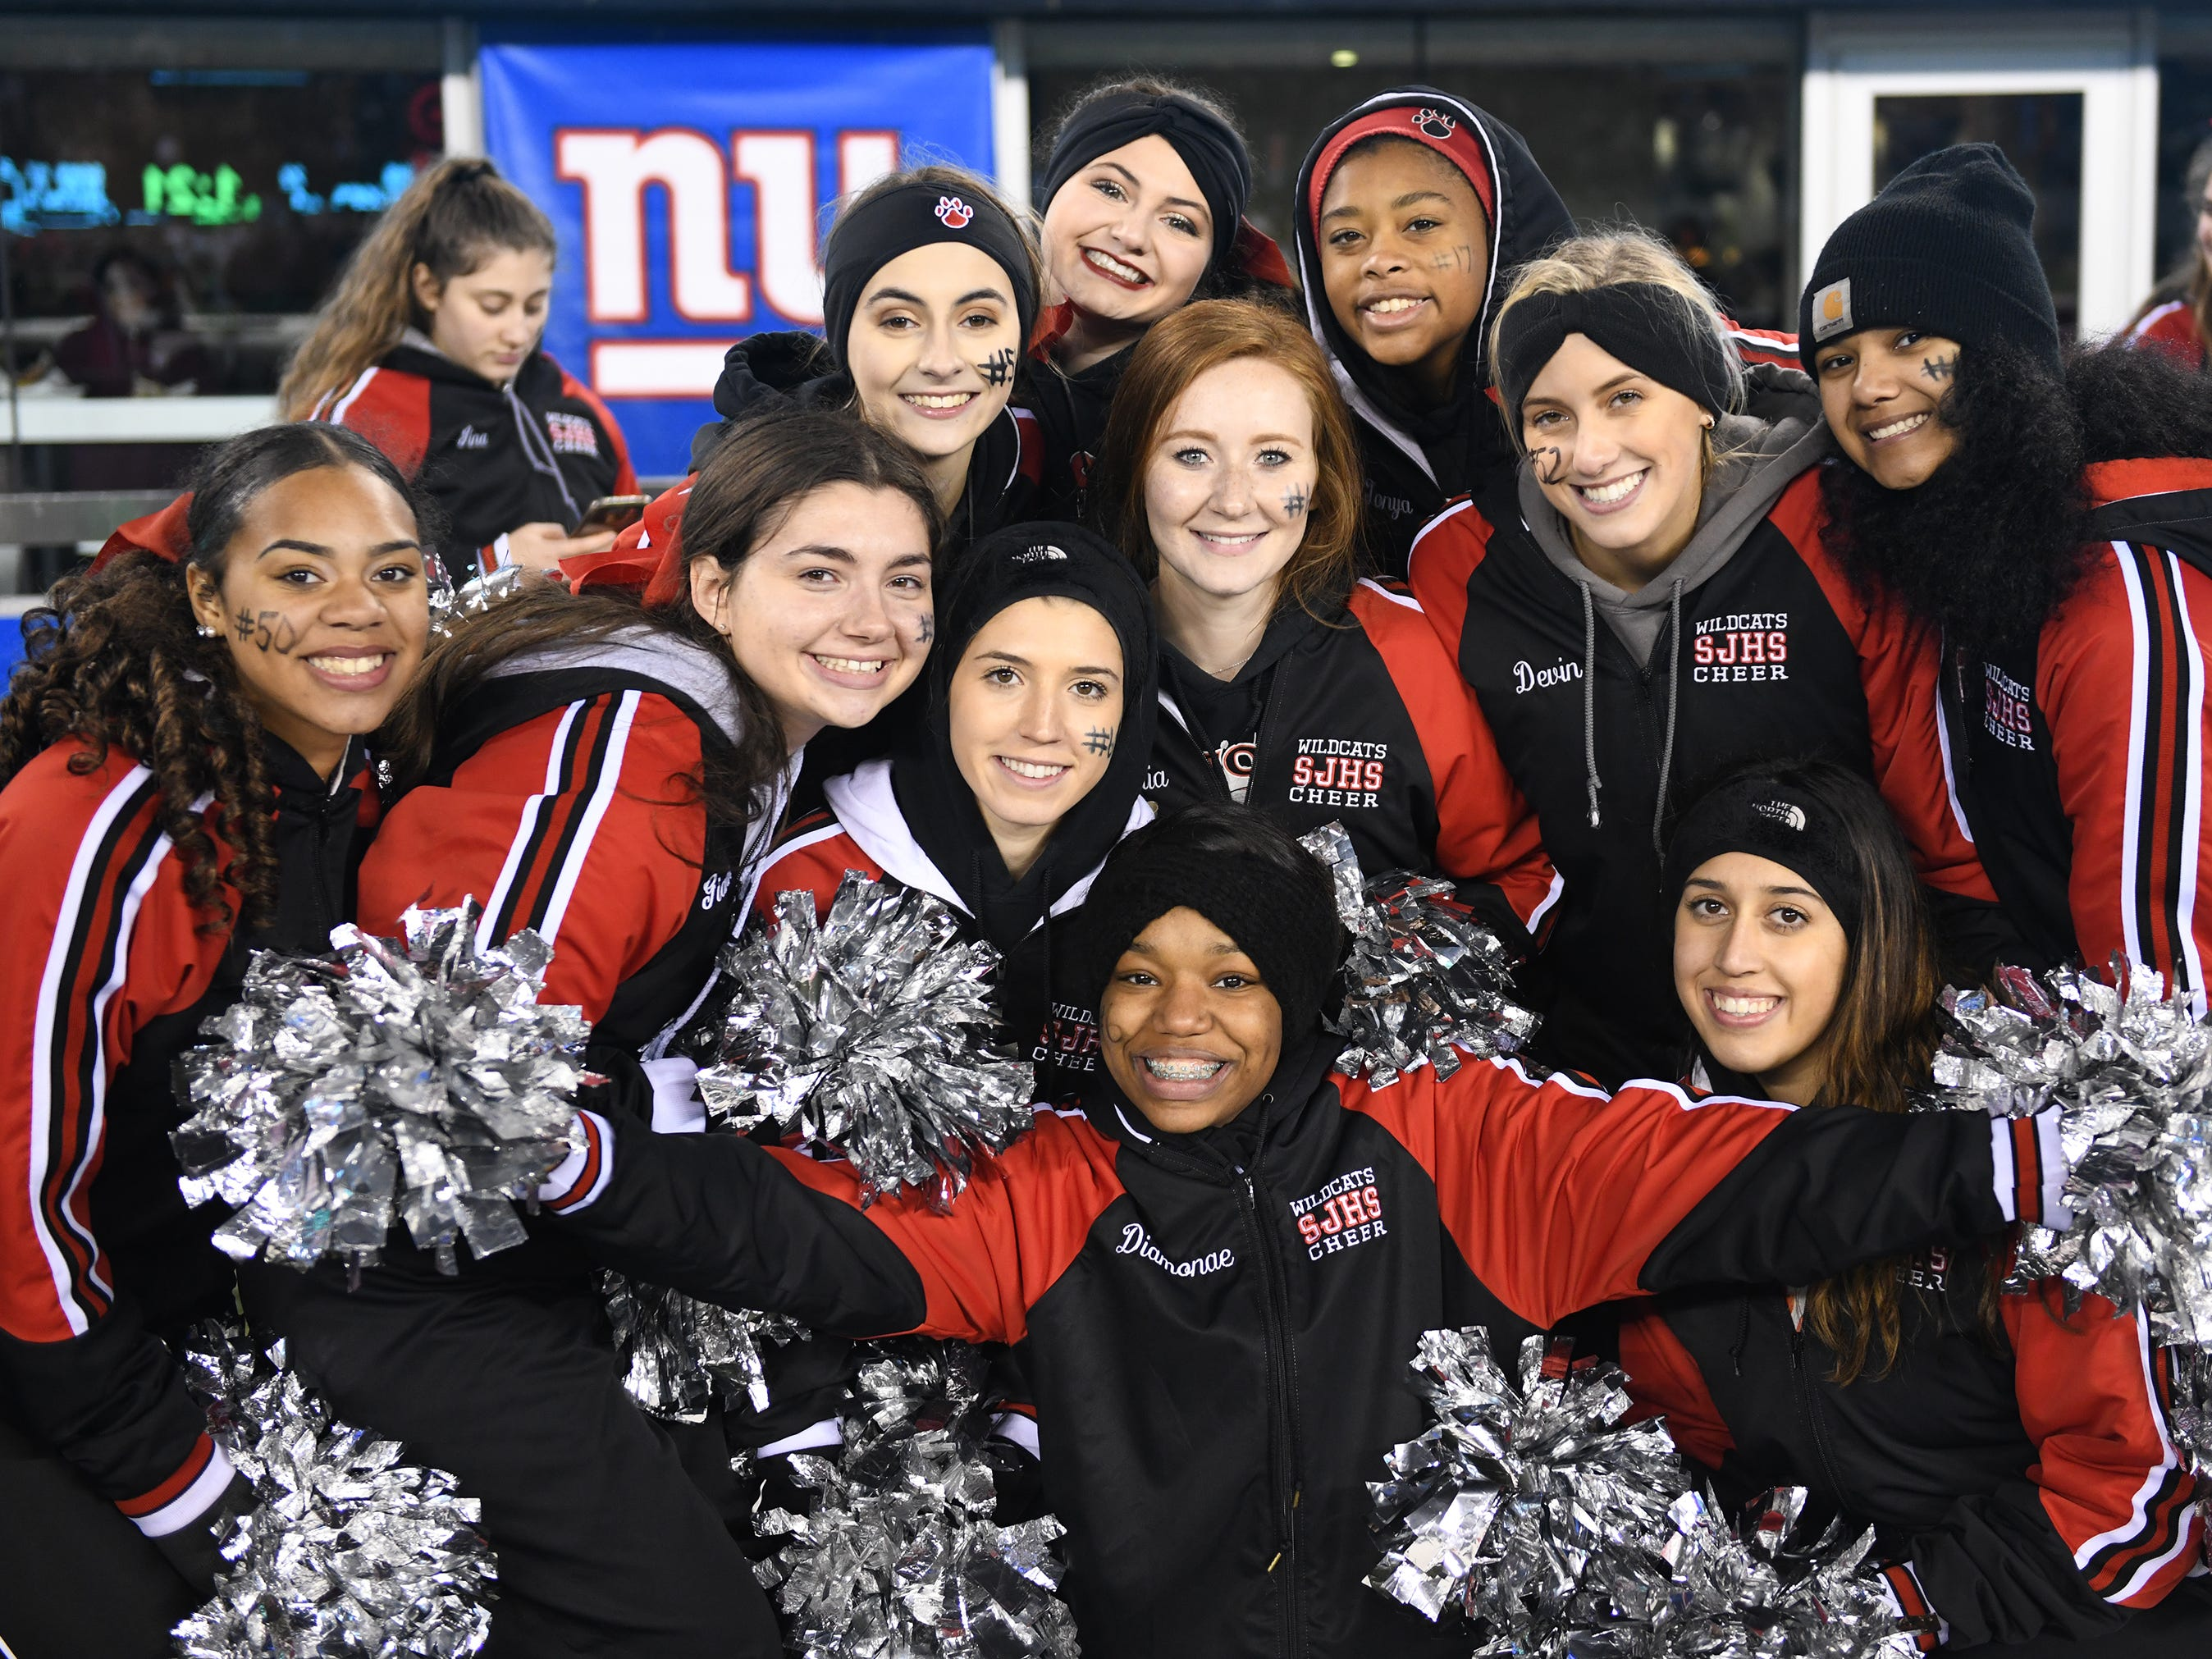 St. Joseph cheerleaders pose for a photo during the Non-Public 2 state championship game against Holy Spirit at MetLife Stadium. The Wildcats topped the Spartans, 41-22.